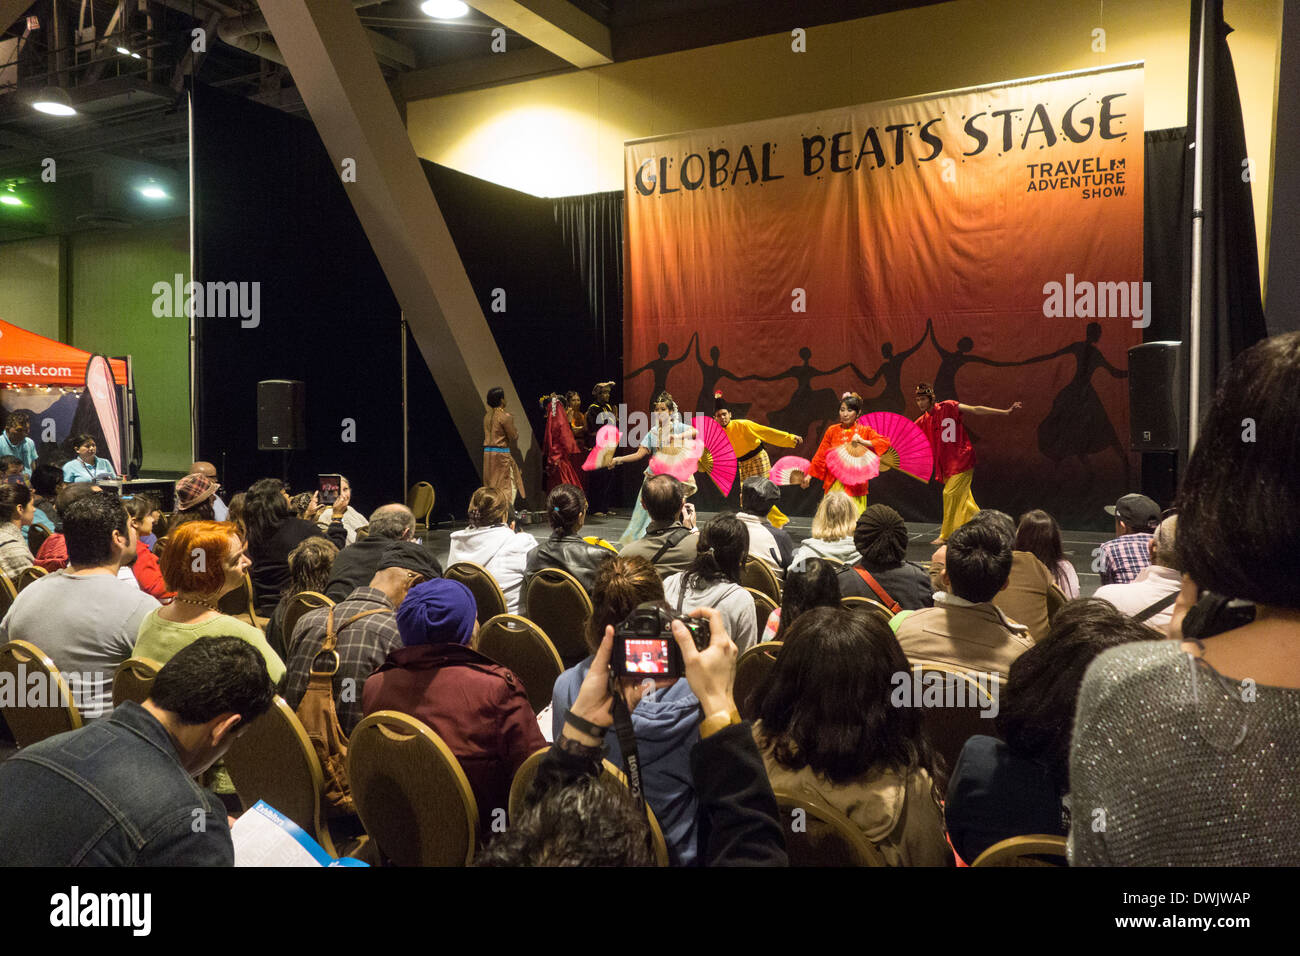 dance performance by Asian dancers in traditional dress at Travel Trade Show in Los Angeles California United States - Stock Image